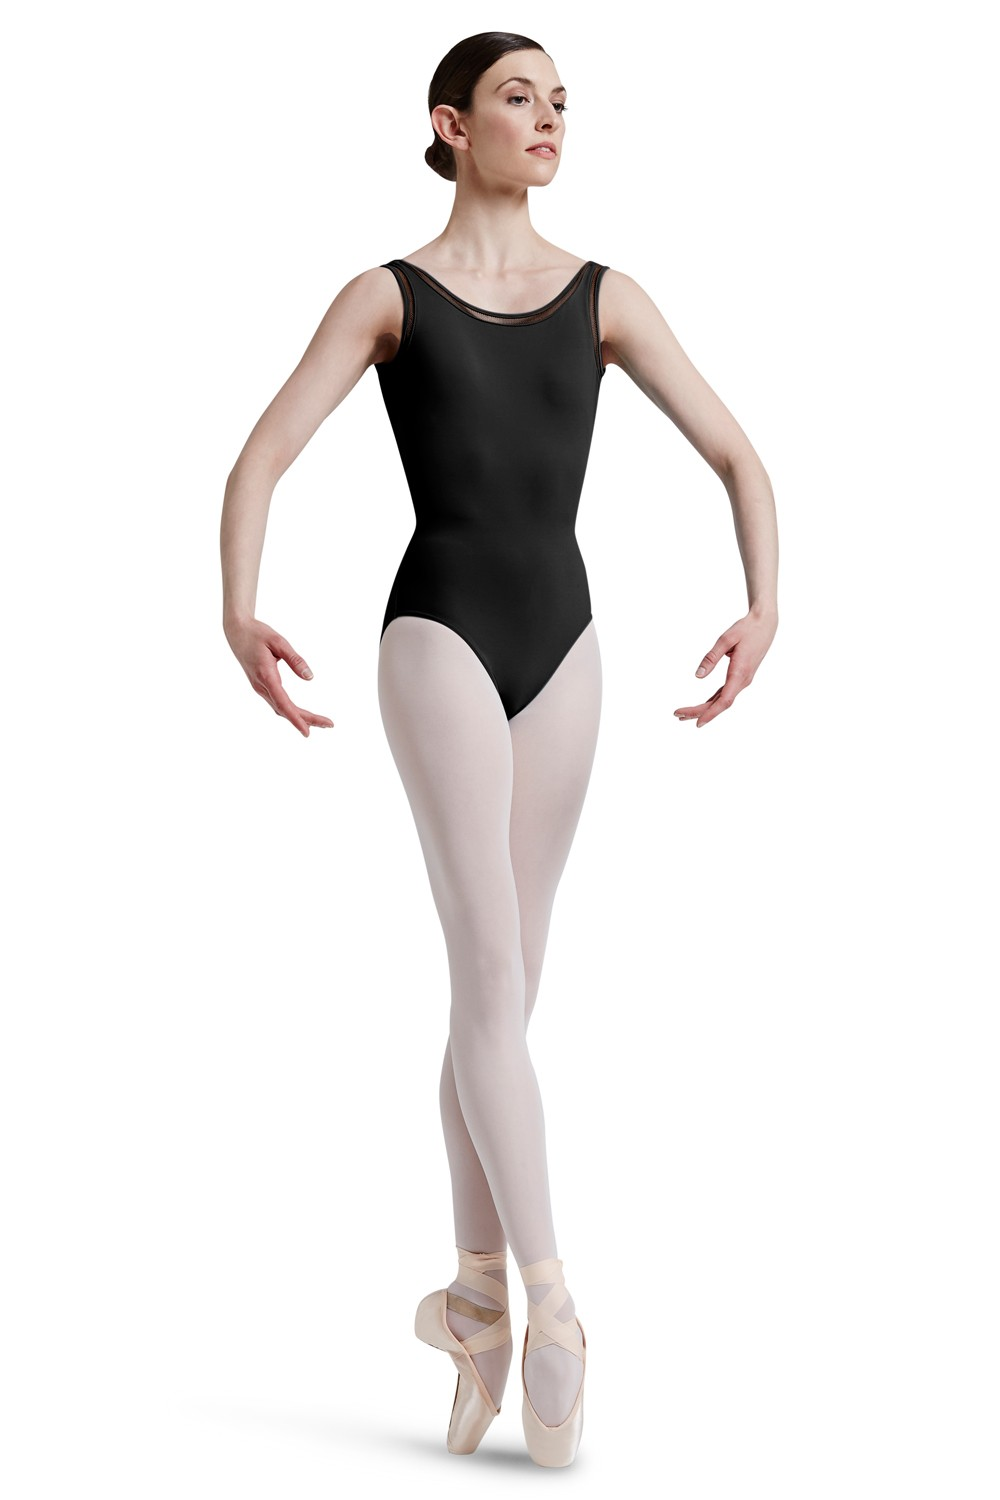 Maillot De Tirantes Anchos Con V Pronunciada Women's Dance Leotards